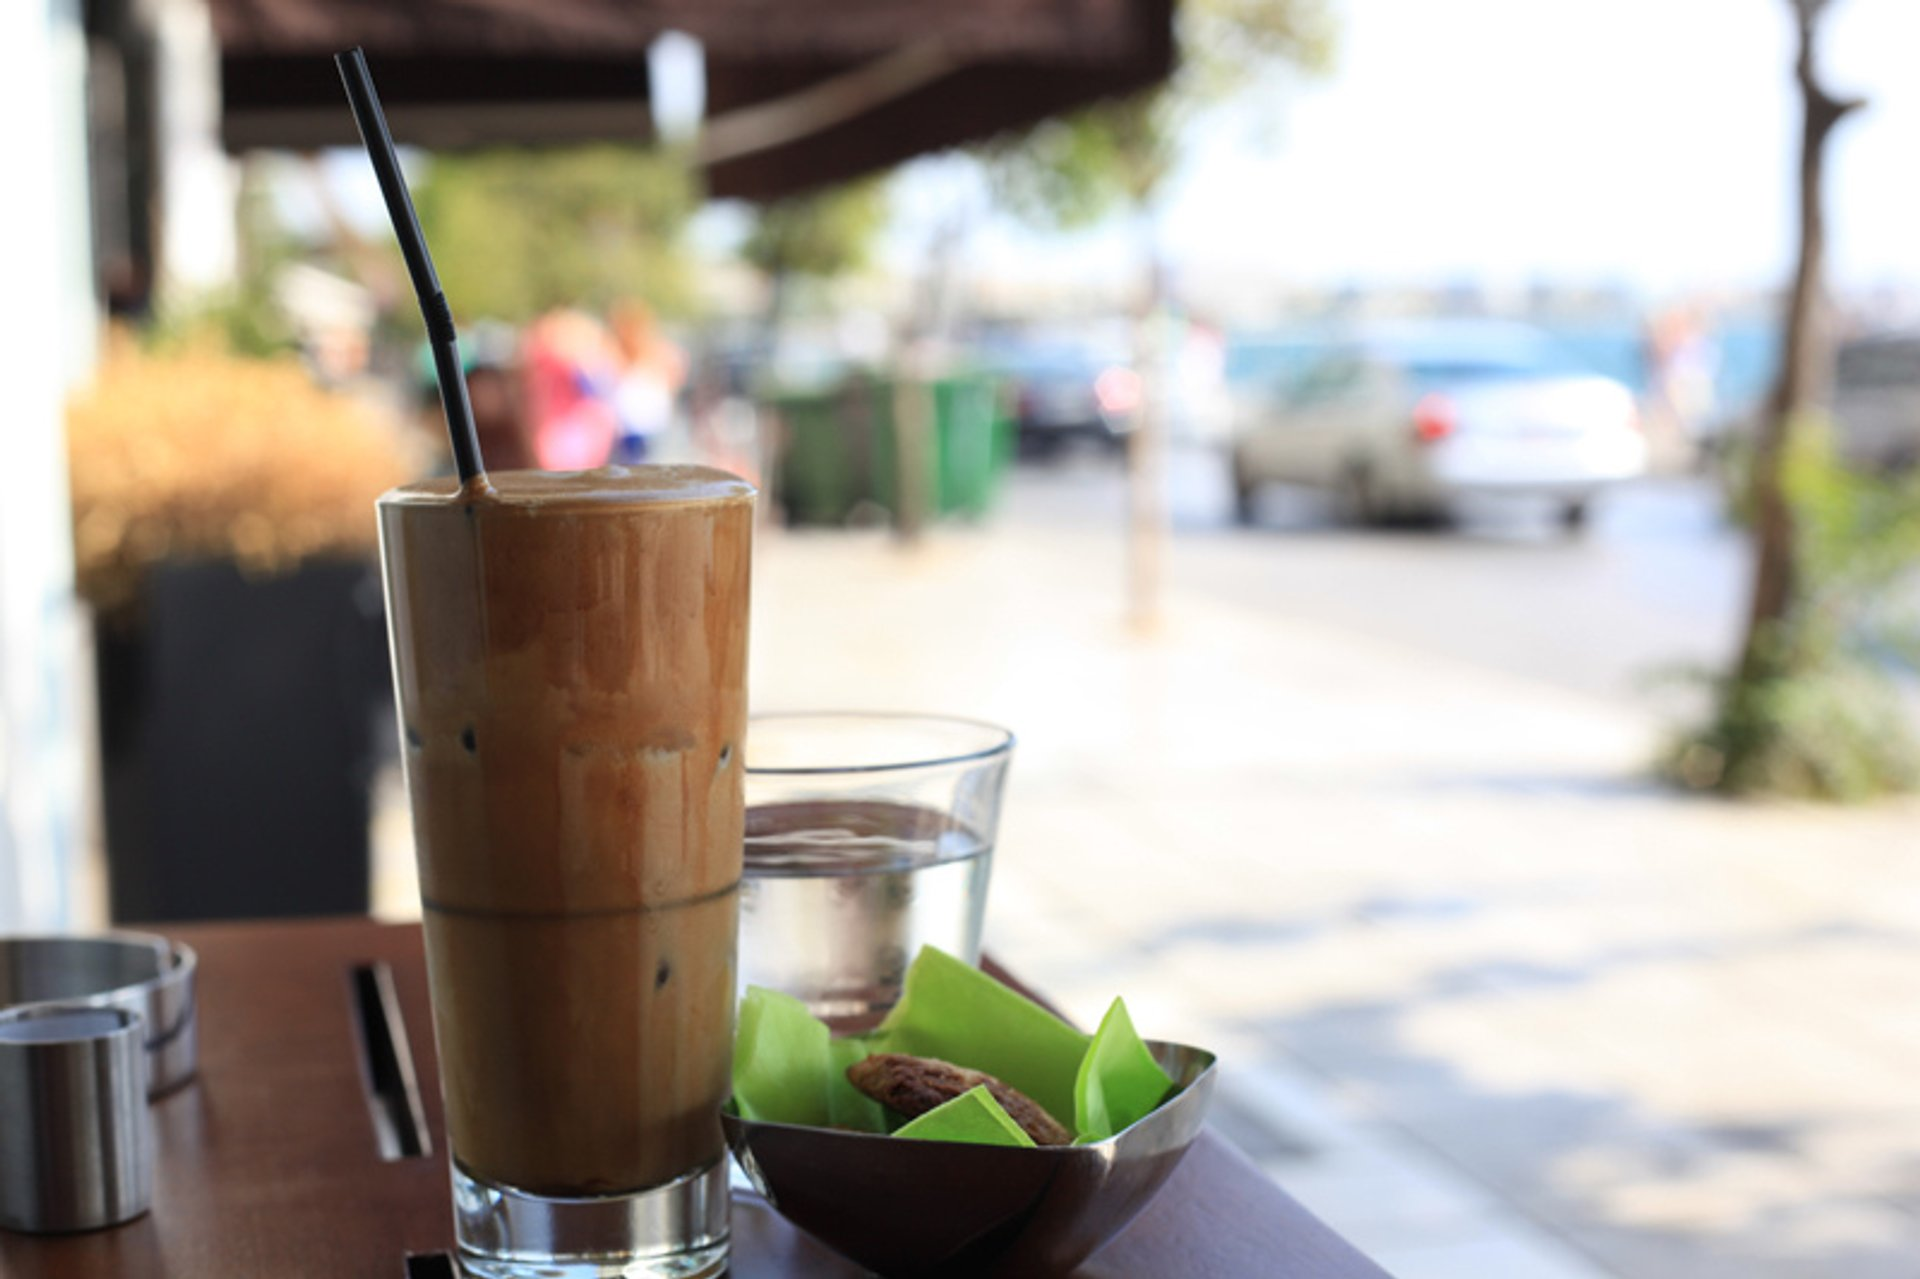 Summer Coffee (Frappe) in Greece 2019 - Best Time